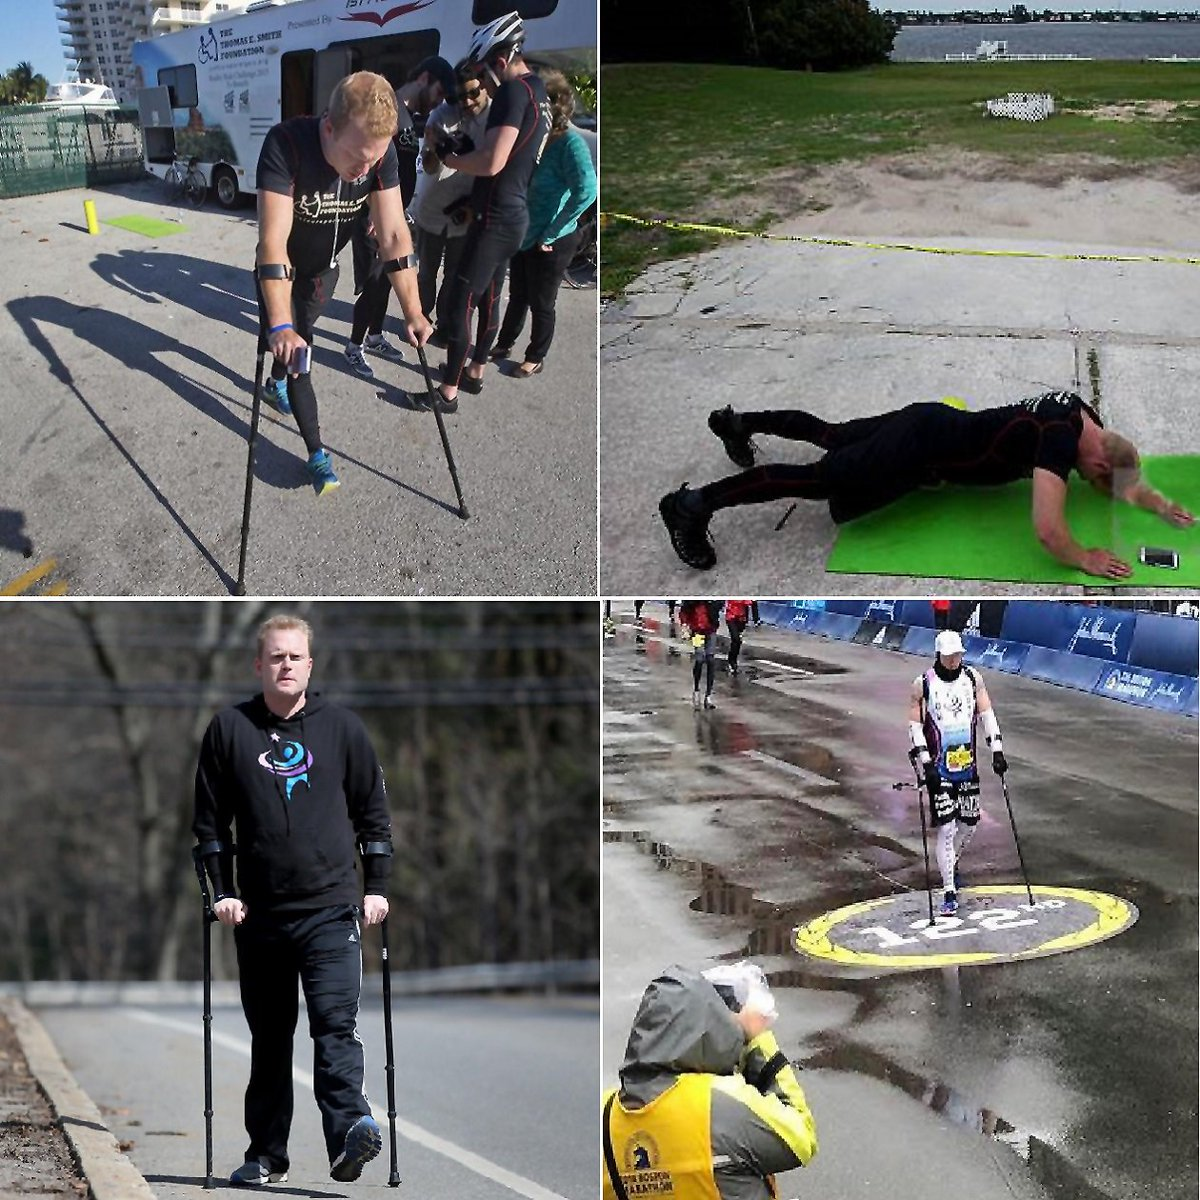 Ambition is the path to success....Twice- paralyzed Swampscott native completes Boston Marathon walk on crutches!  http:// bit.ly/2HdBf1K  &nbsp;   #Crutches #Marathan #boston  #Inspiration #Ambition #Success #Lifewithcrutch #Mobilityaids #Crutcheslife #Mobility #quote<br>http://pic.twitter.com/ACMl97I1UH